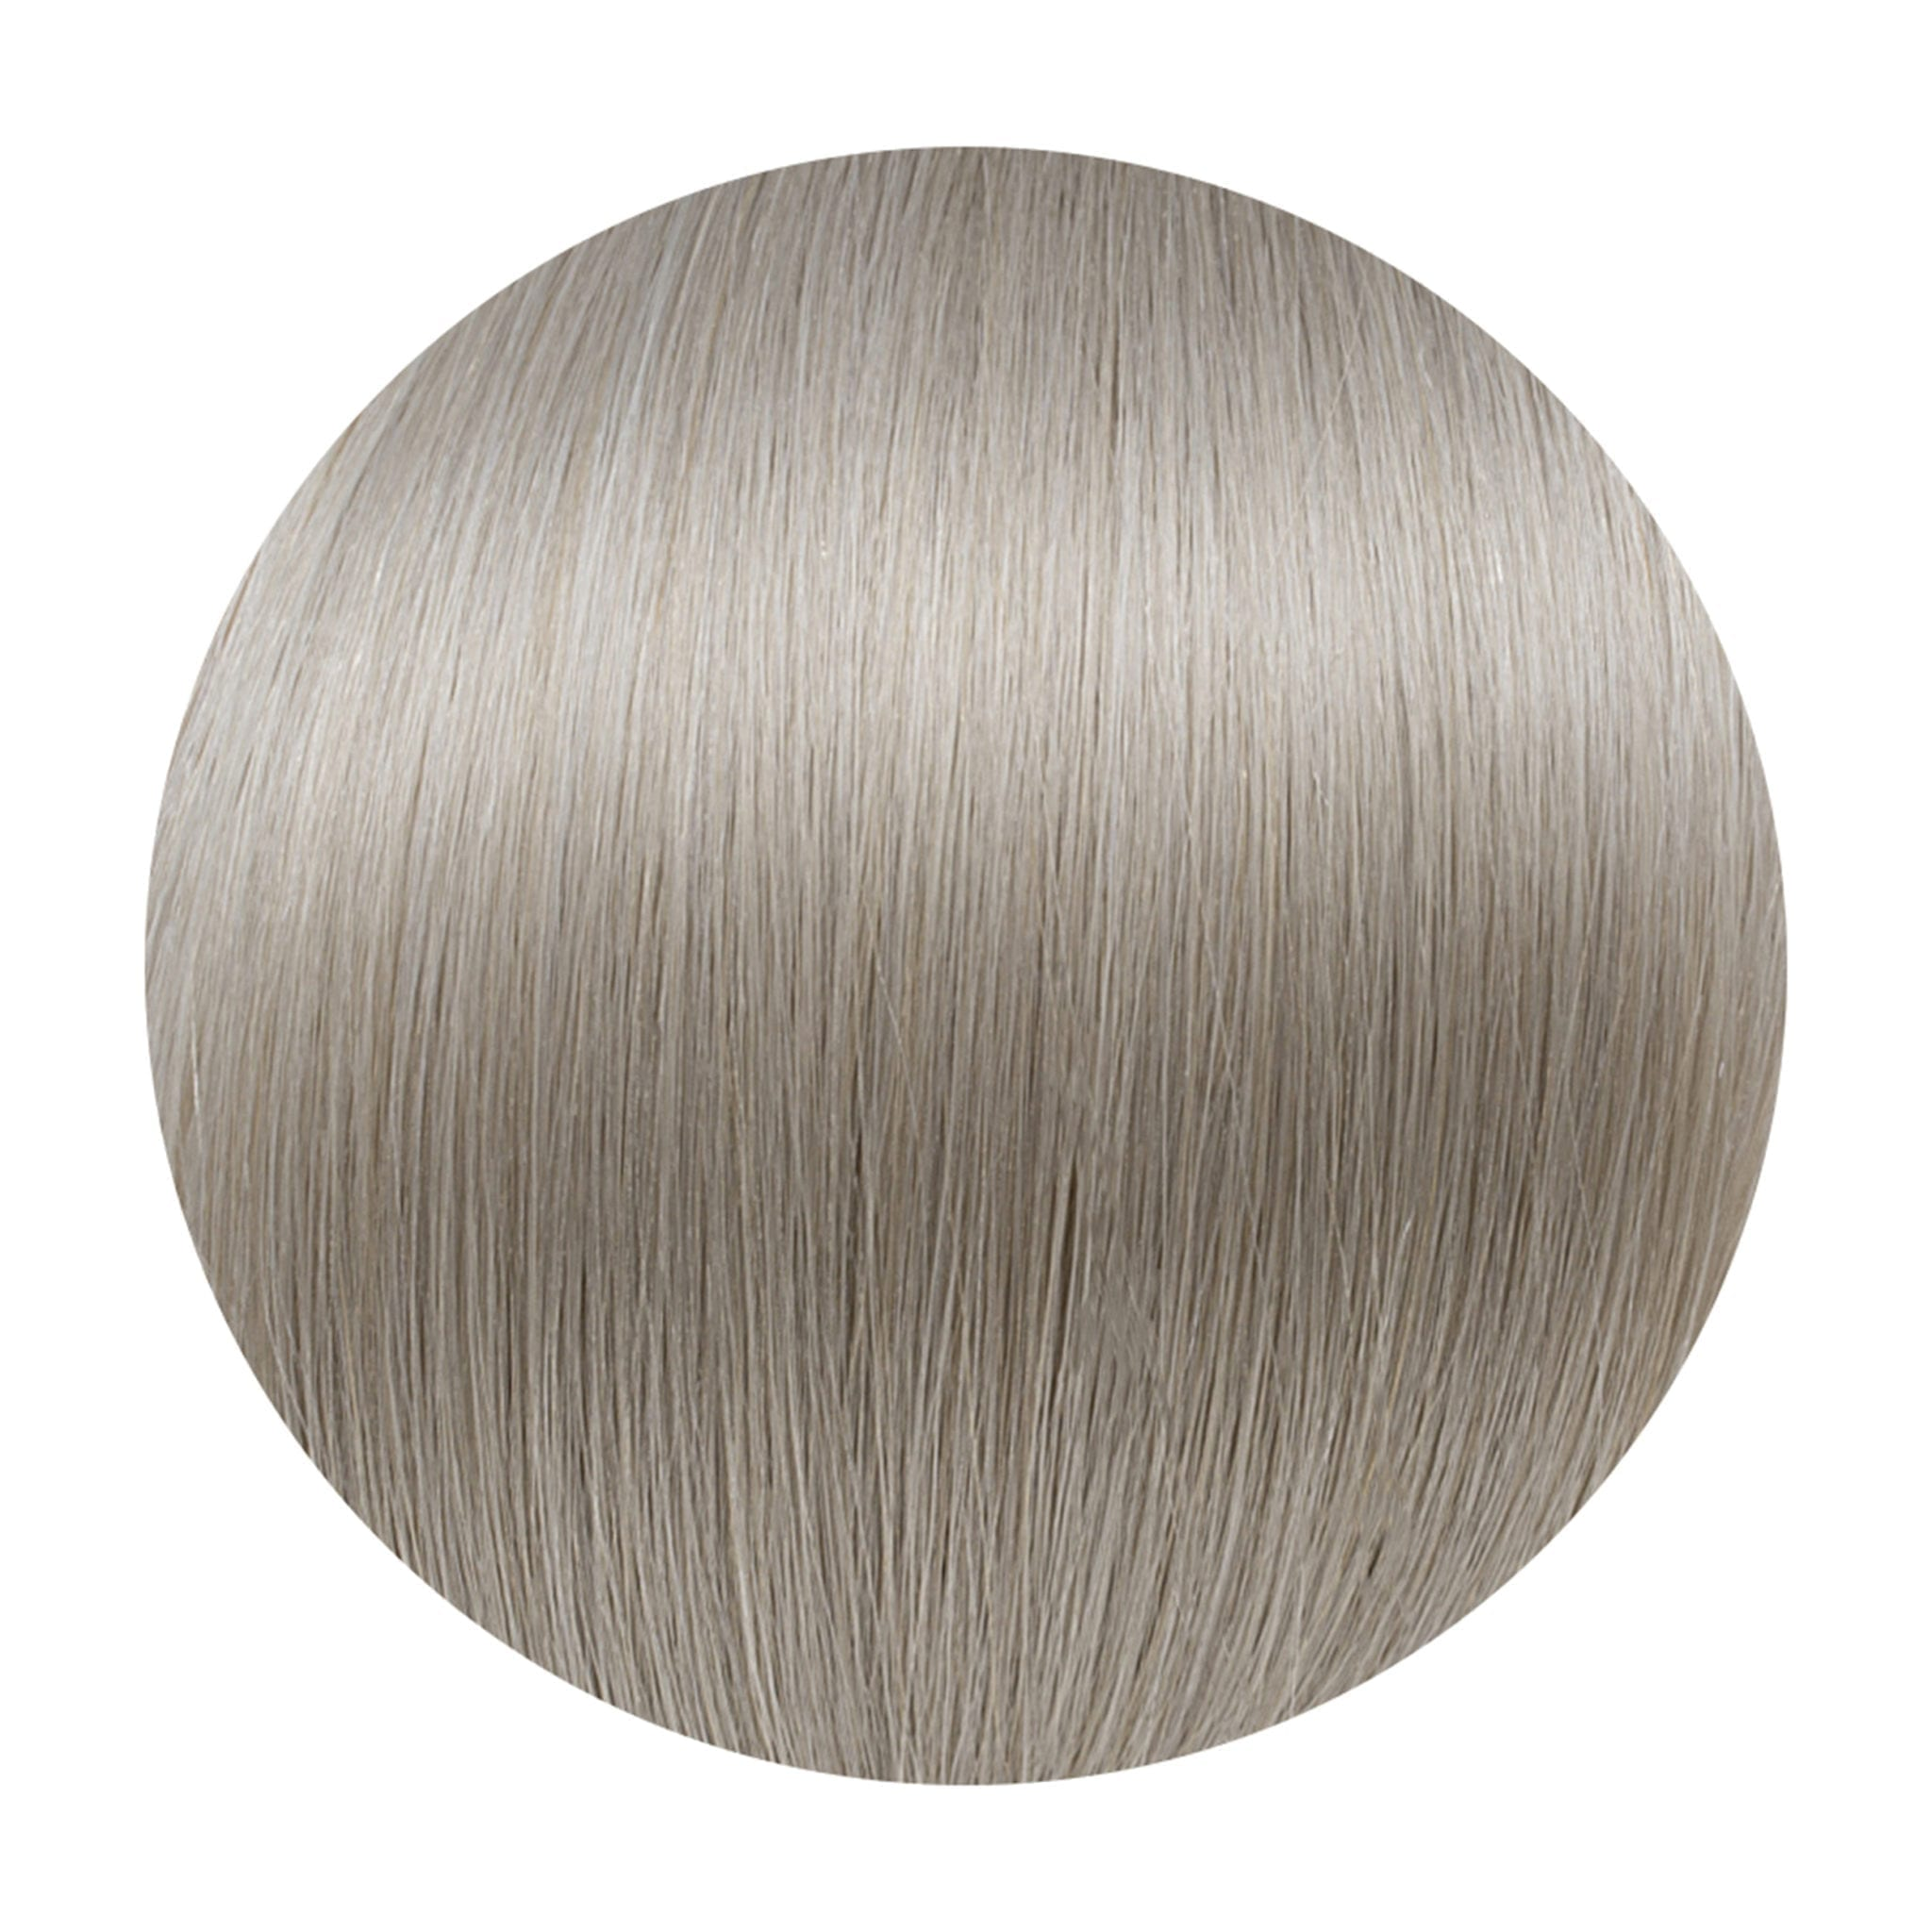 Mist Natural Wave Tape Hair Extensions Ultimate 21.5-22 Inches